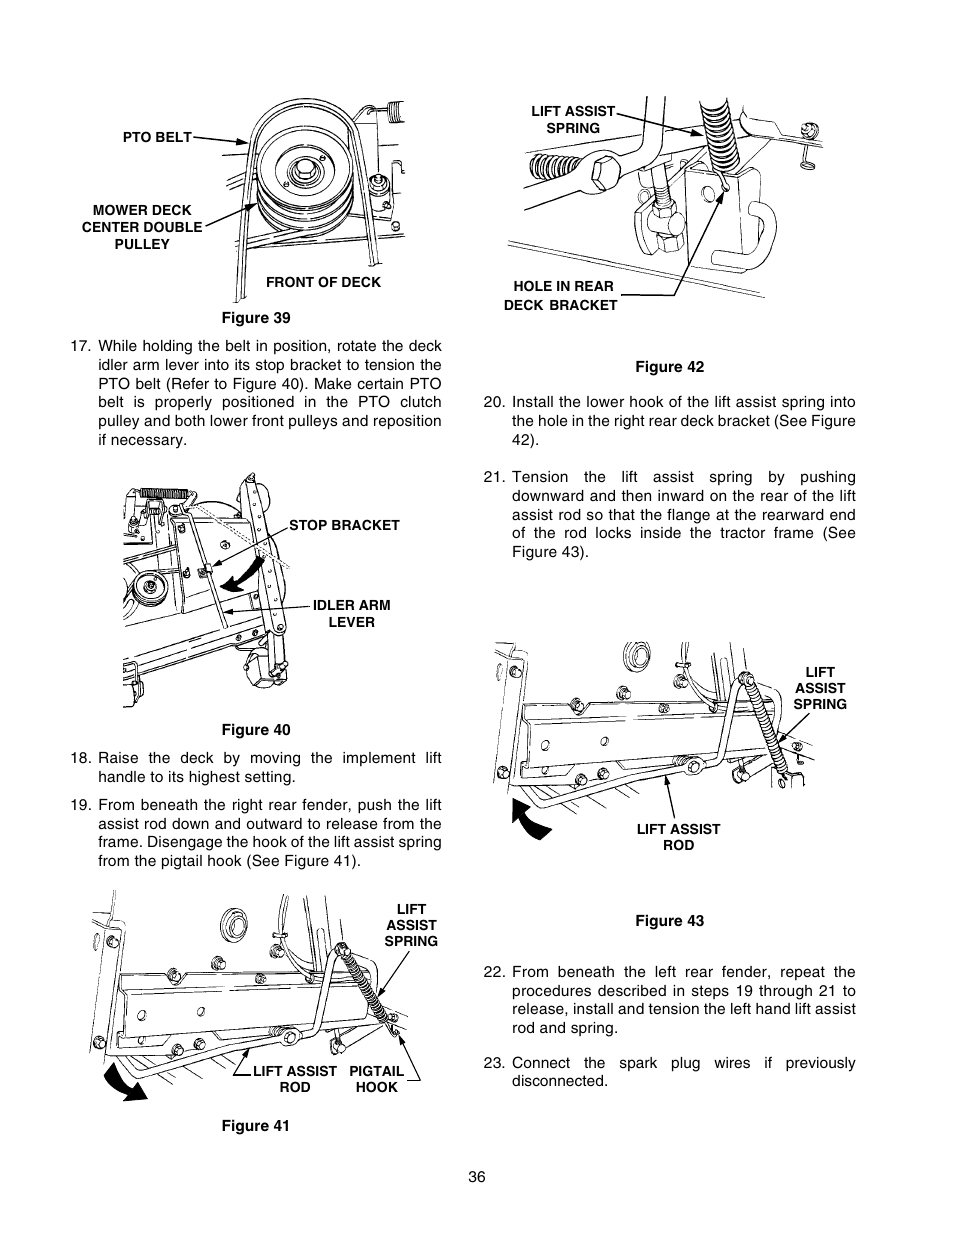 2206 Cub Cadet Wiring Schematic Trusted Schematics Diagram 2186 User Manual Page 36 60 2160